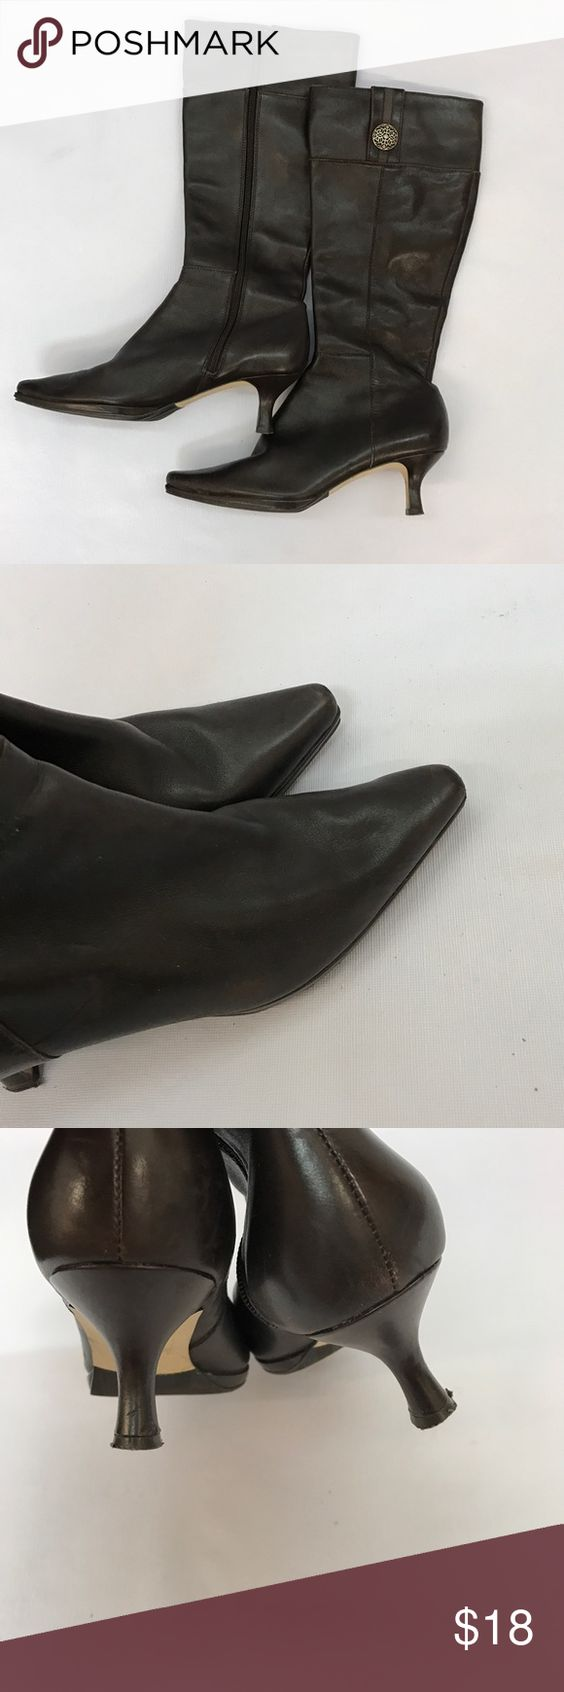 Tahari leather boots sz 6.5 Tahari leather boots. Sz 6.5, good condition. Brown leather. Tahari Shoes Heels